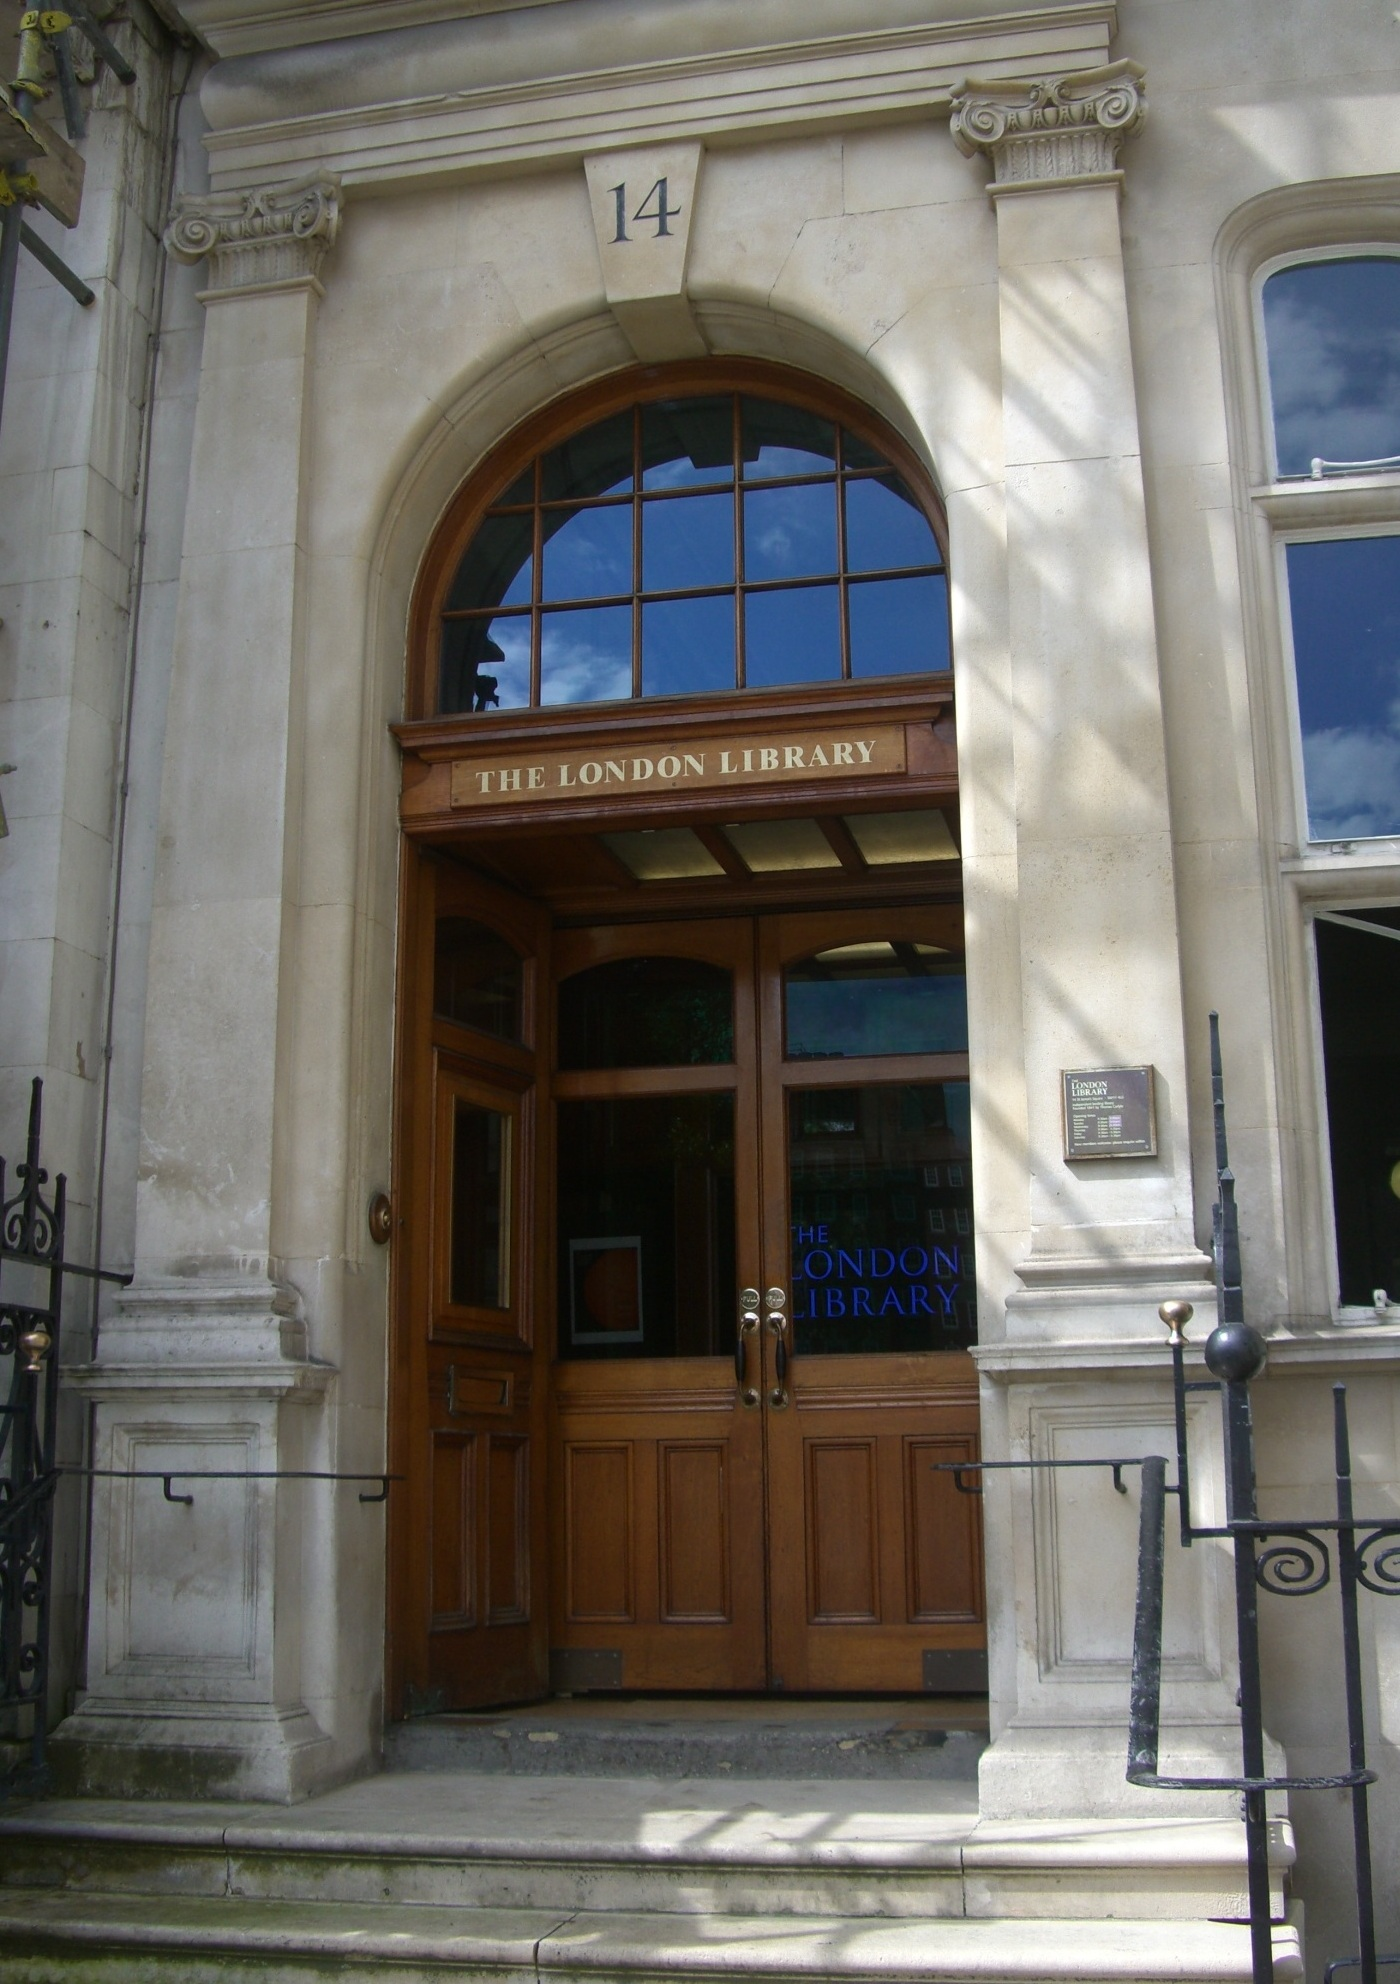 The entrance to the London Library - 14 St James's Square